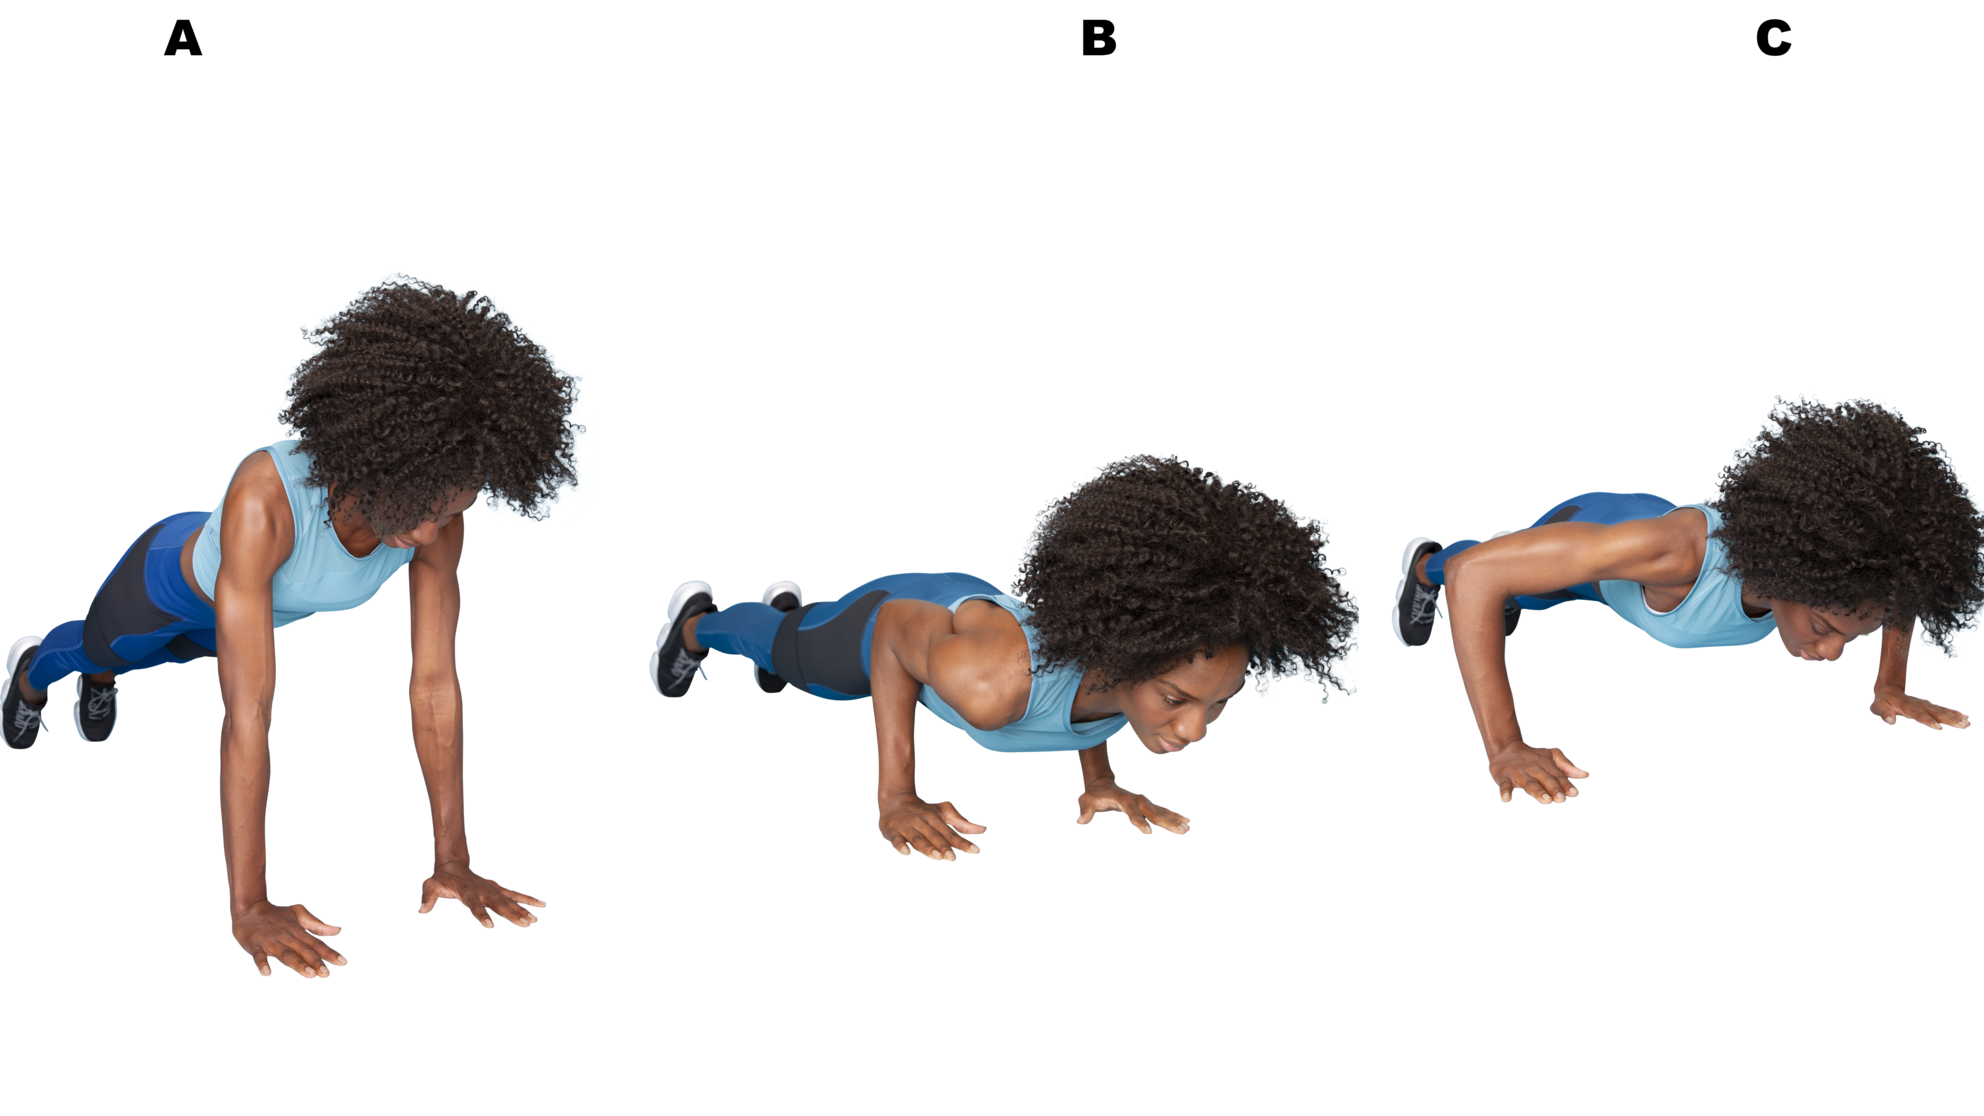 INTERVAL 5 ALTERNATING NARROW AND WIDE PUSH-UPS